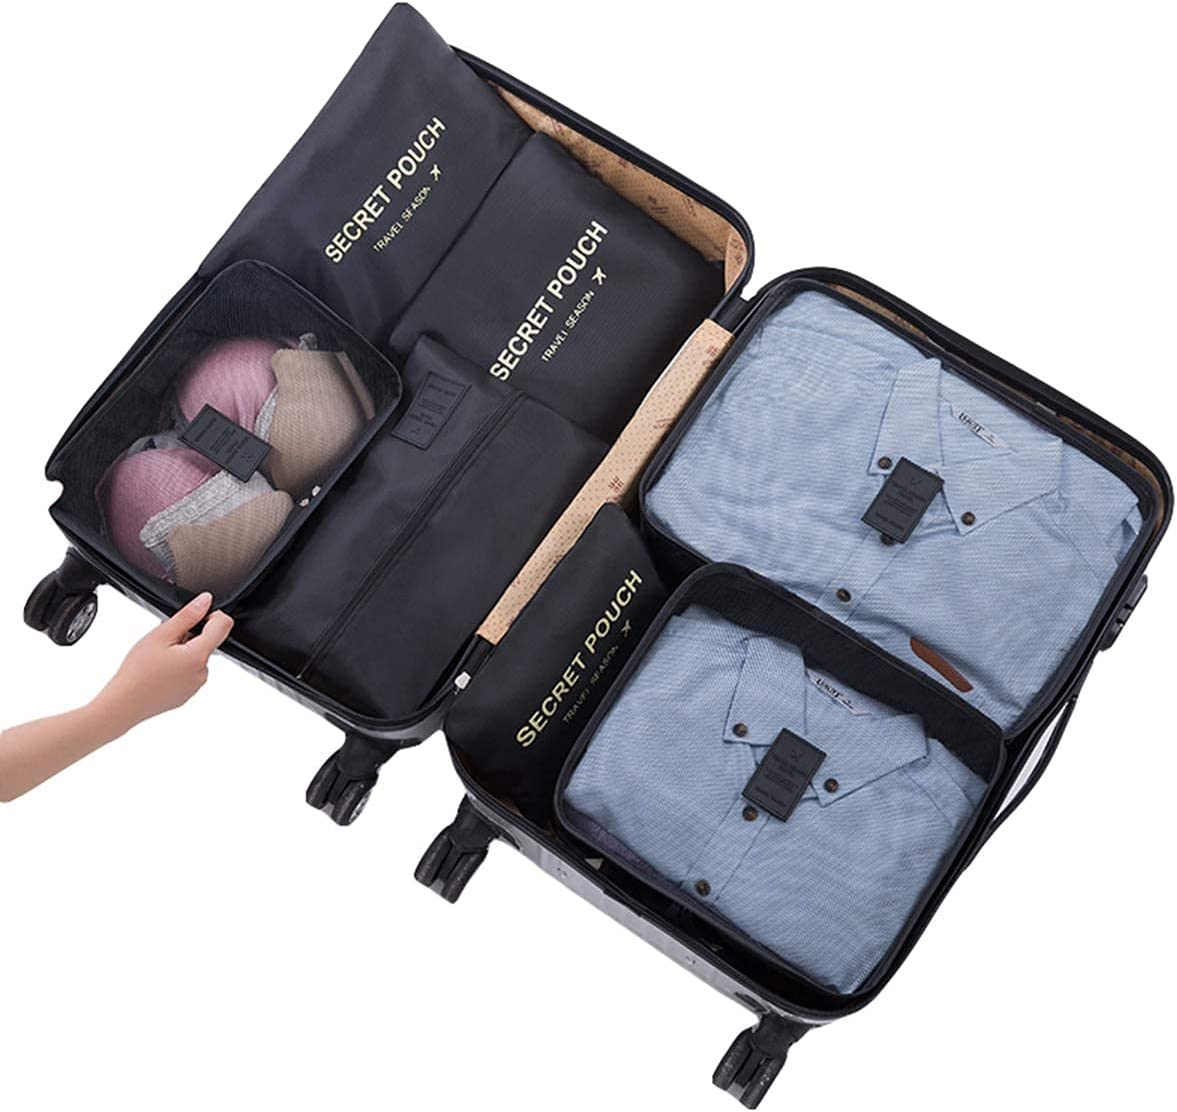 7Pcs Travel Deluxe Storage Bags Luggage Max 65% OFF Packing Clothin Cubes Organizer